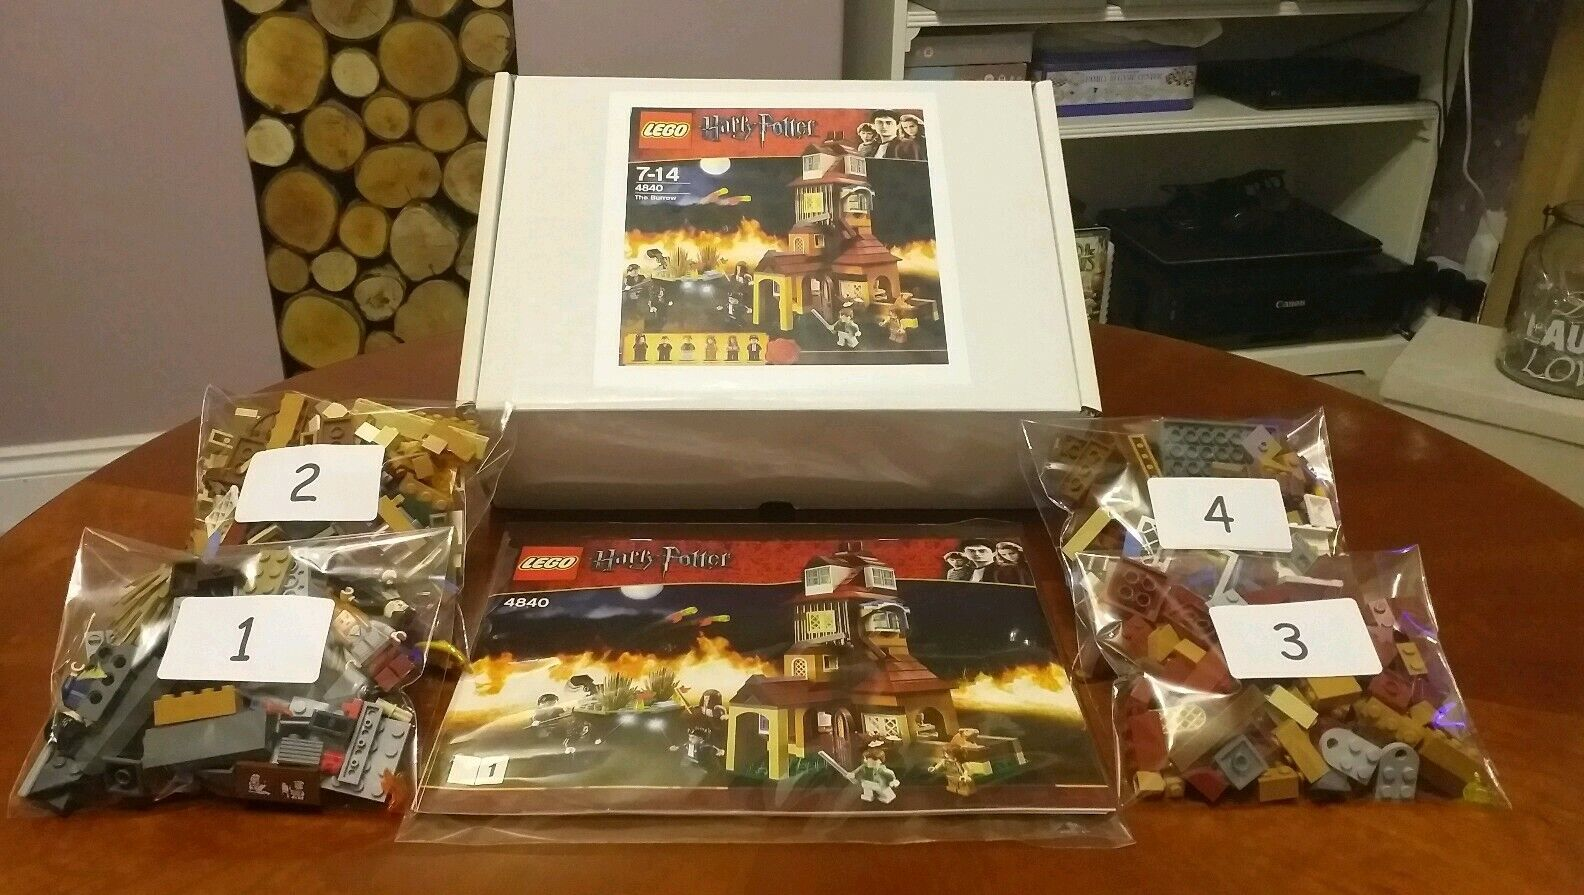 Lego Harry Potter 4840 The Burrow - complete, bagged, instructions, gift boxed